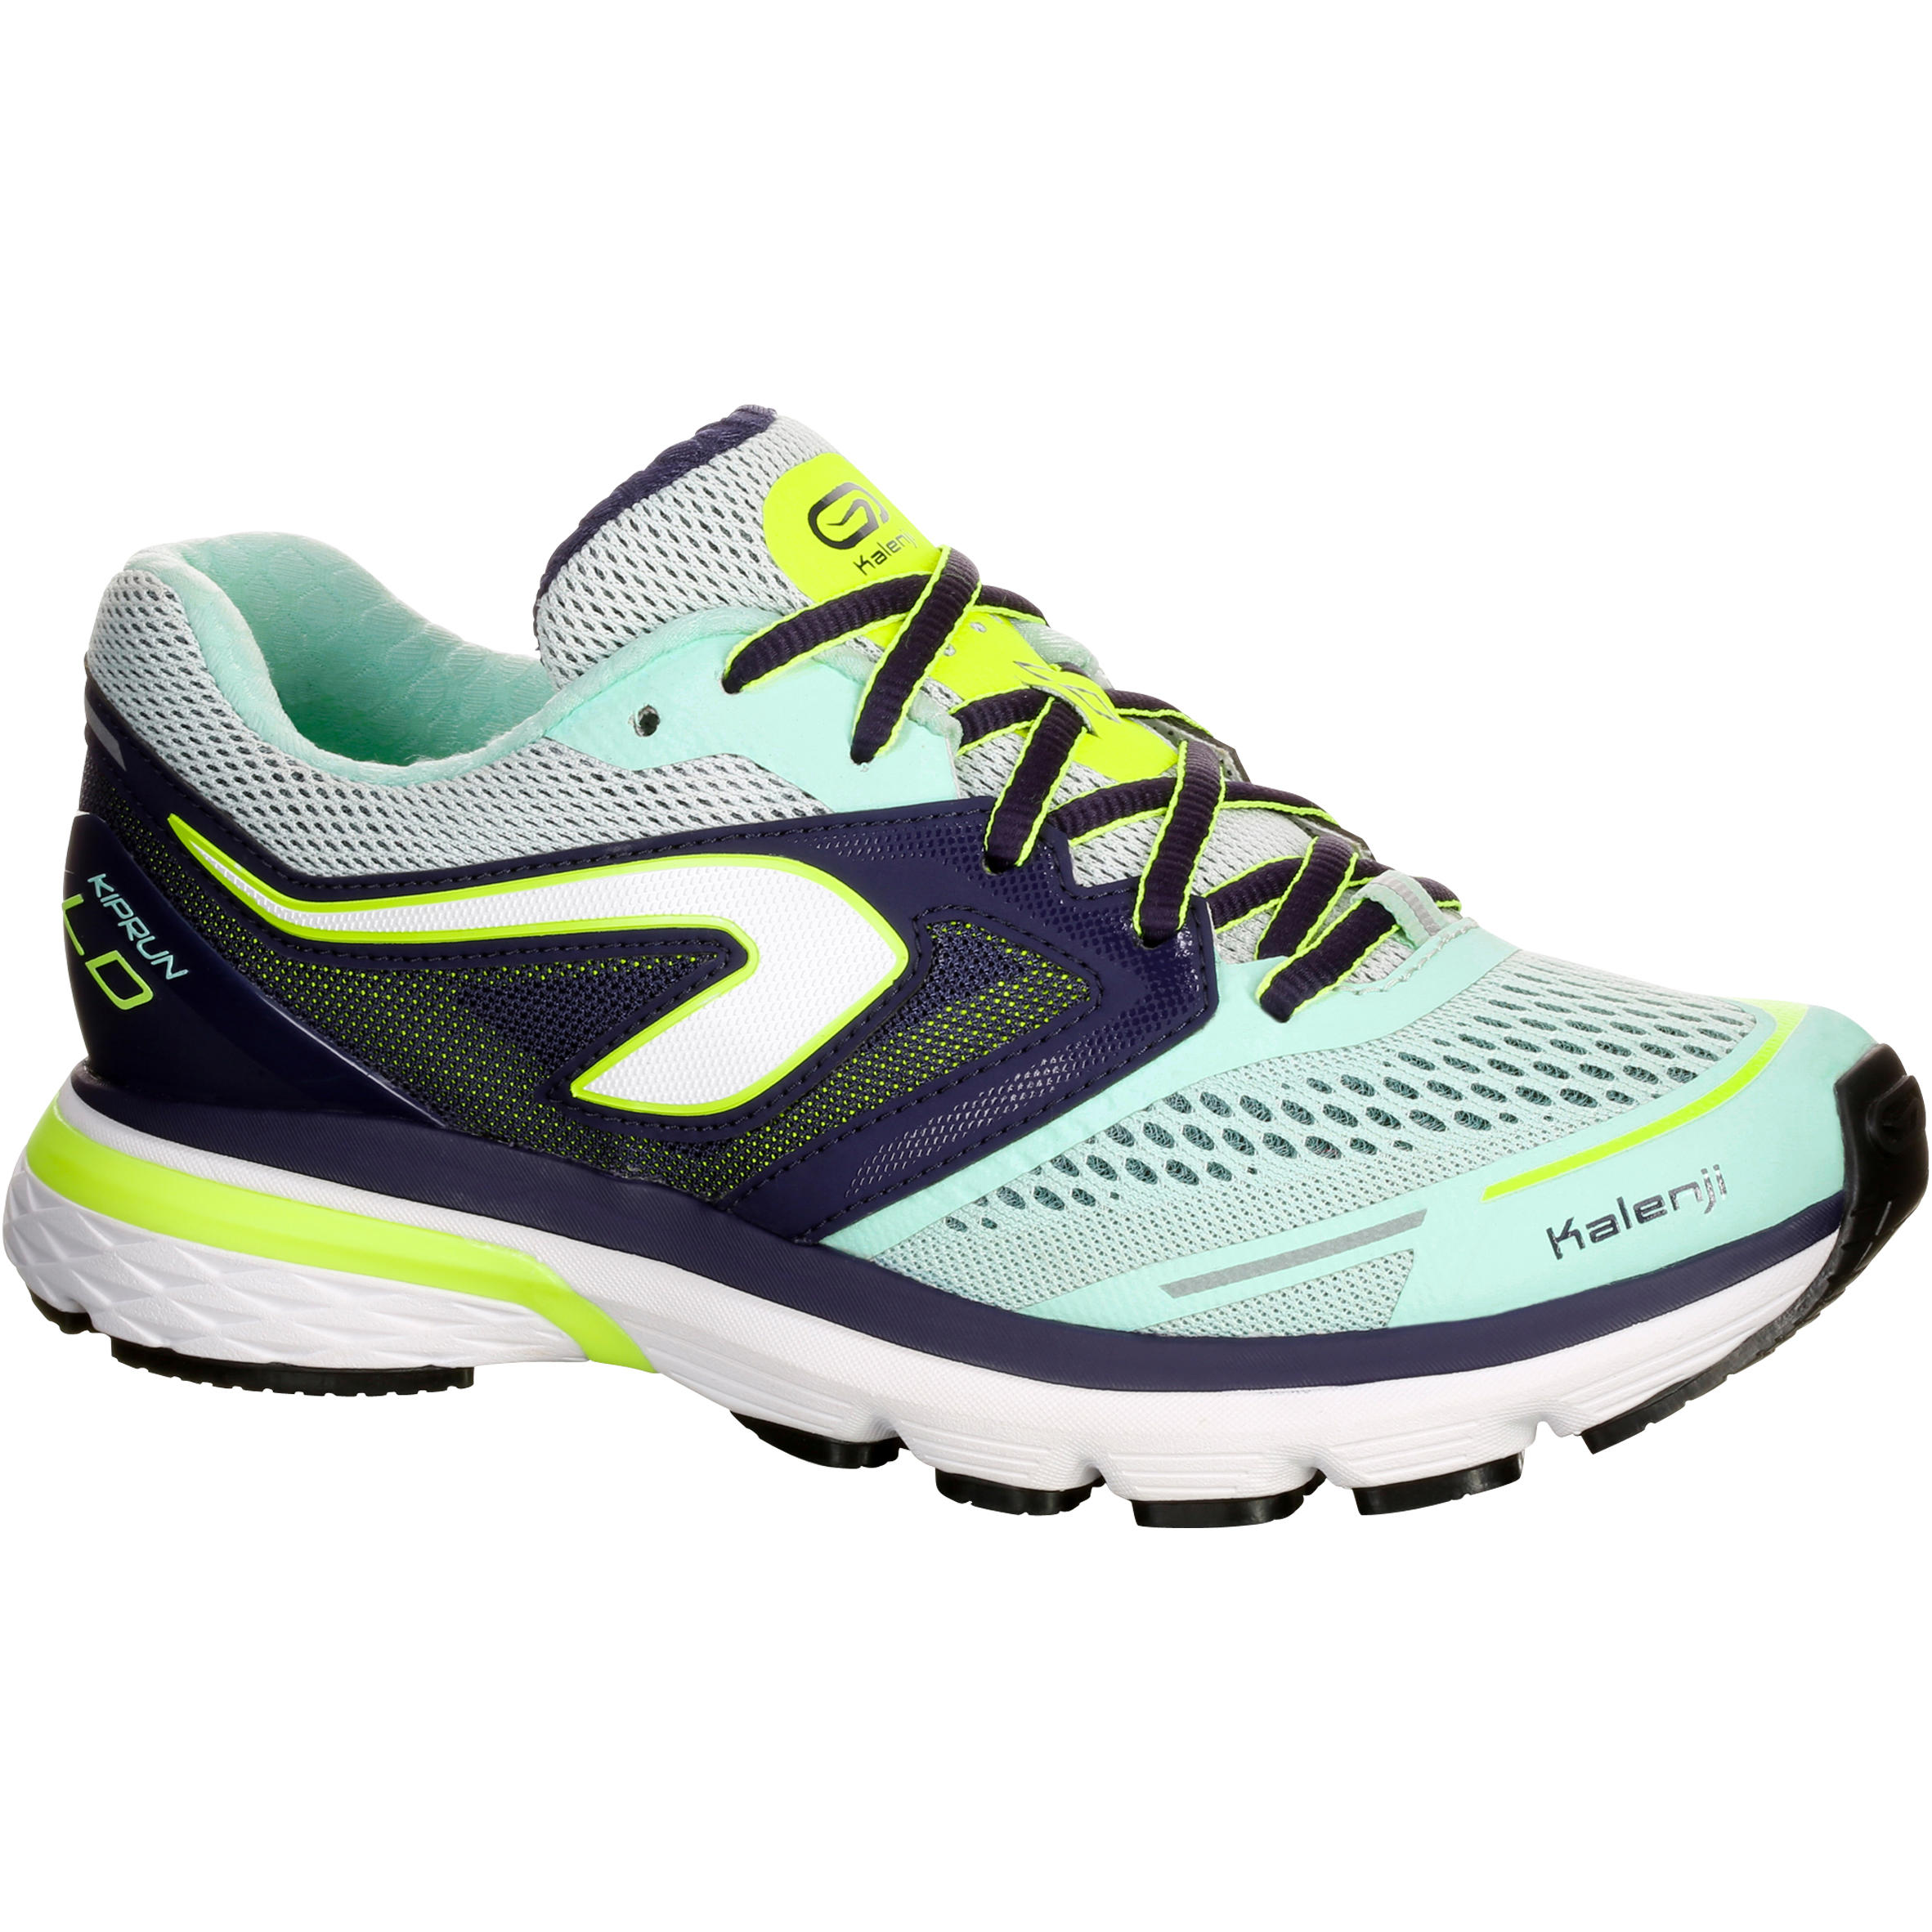 Kiprun LD Women's Running Shoes - Blue